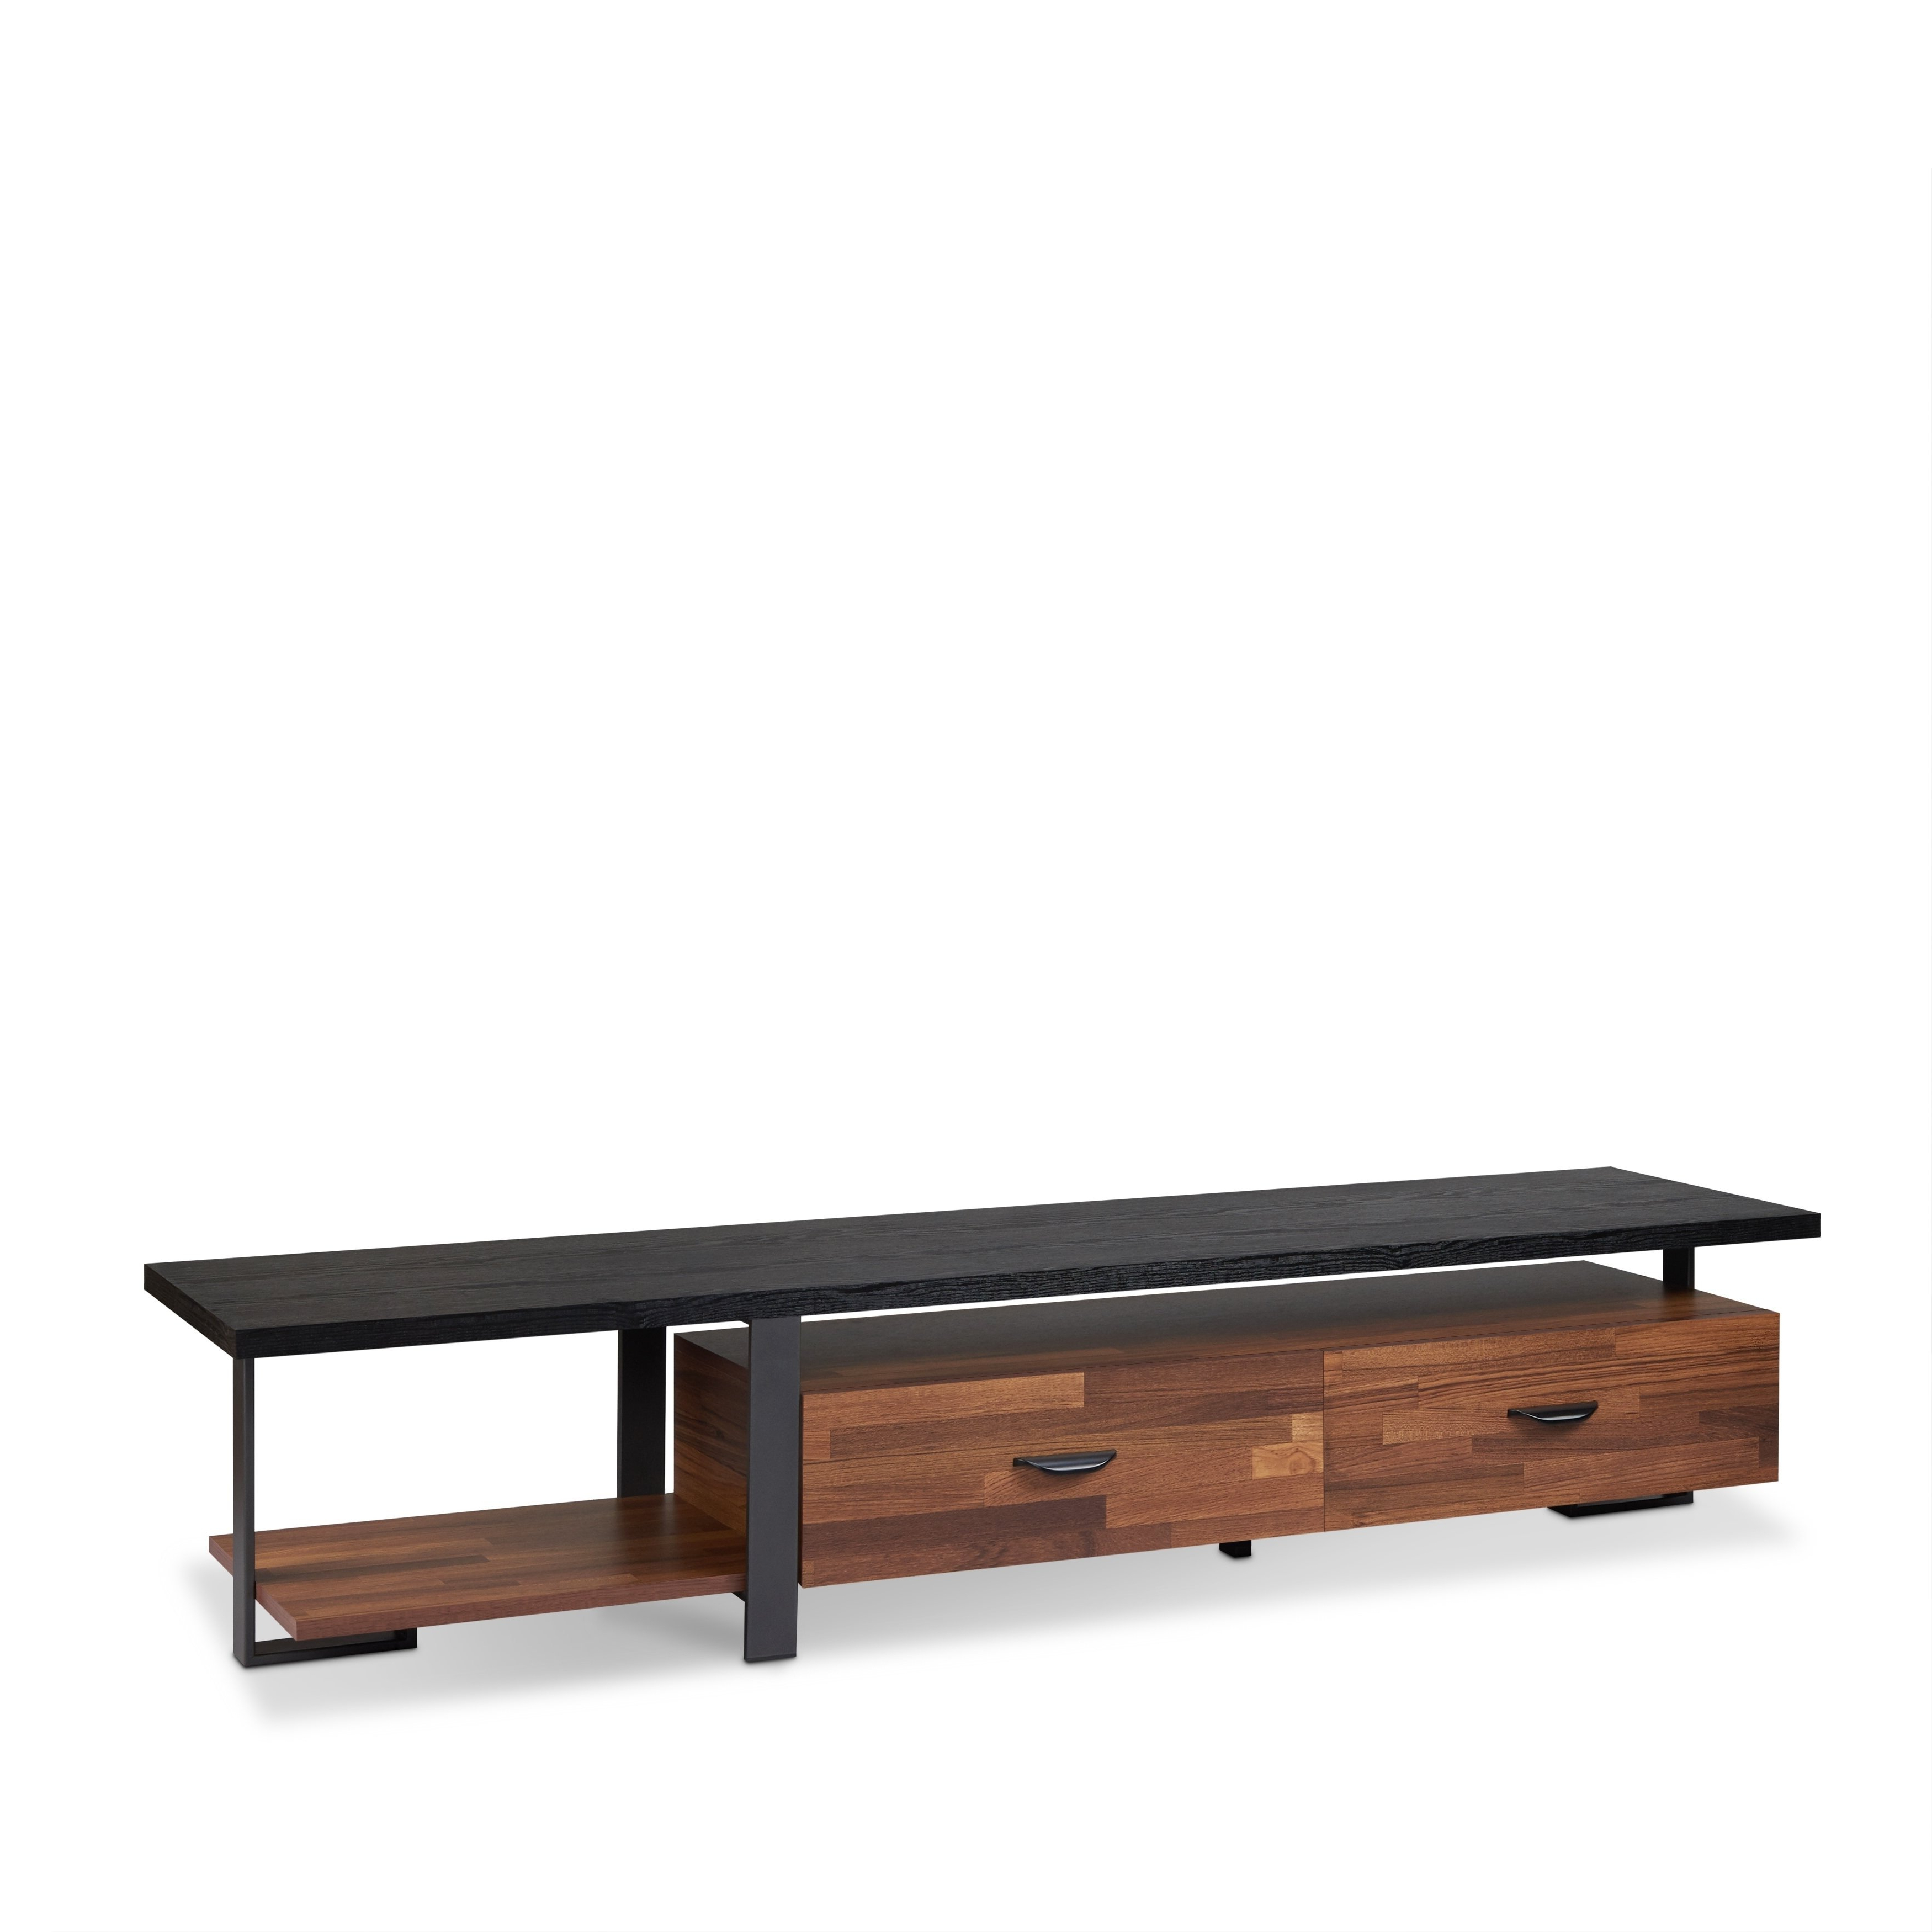 Widely Used Walnut Tv Cabinets With Doors Pertaining To Shop Acme Elling Black Walnut Tv Stand – Free Shipping Today (View 19 of 20)